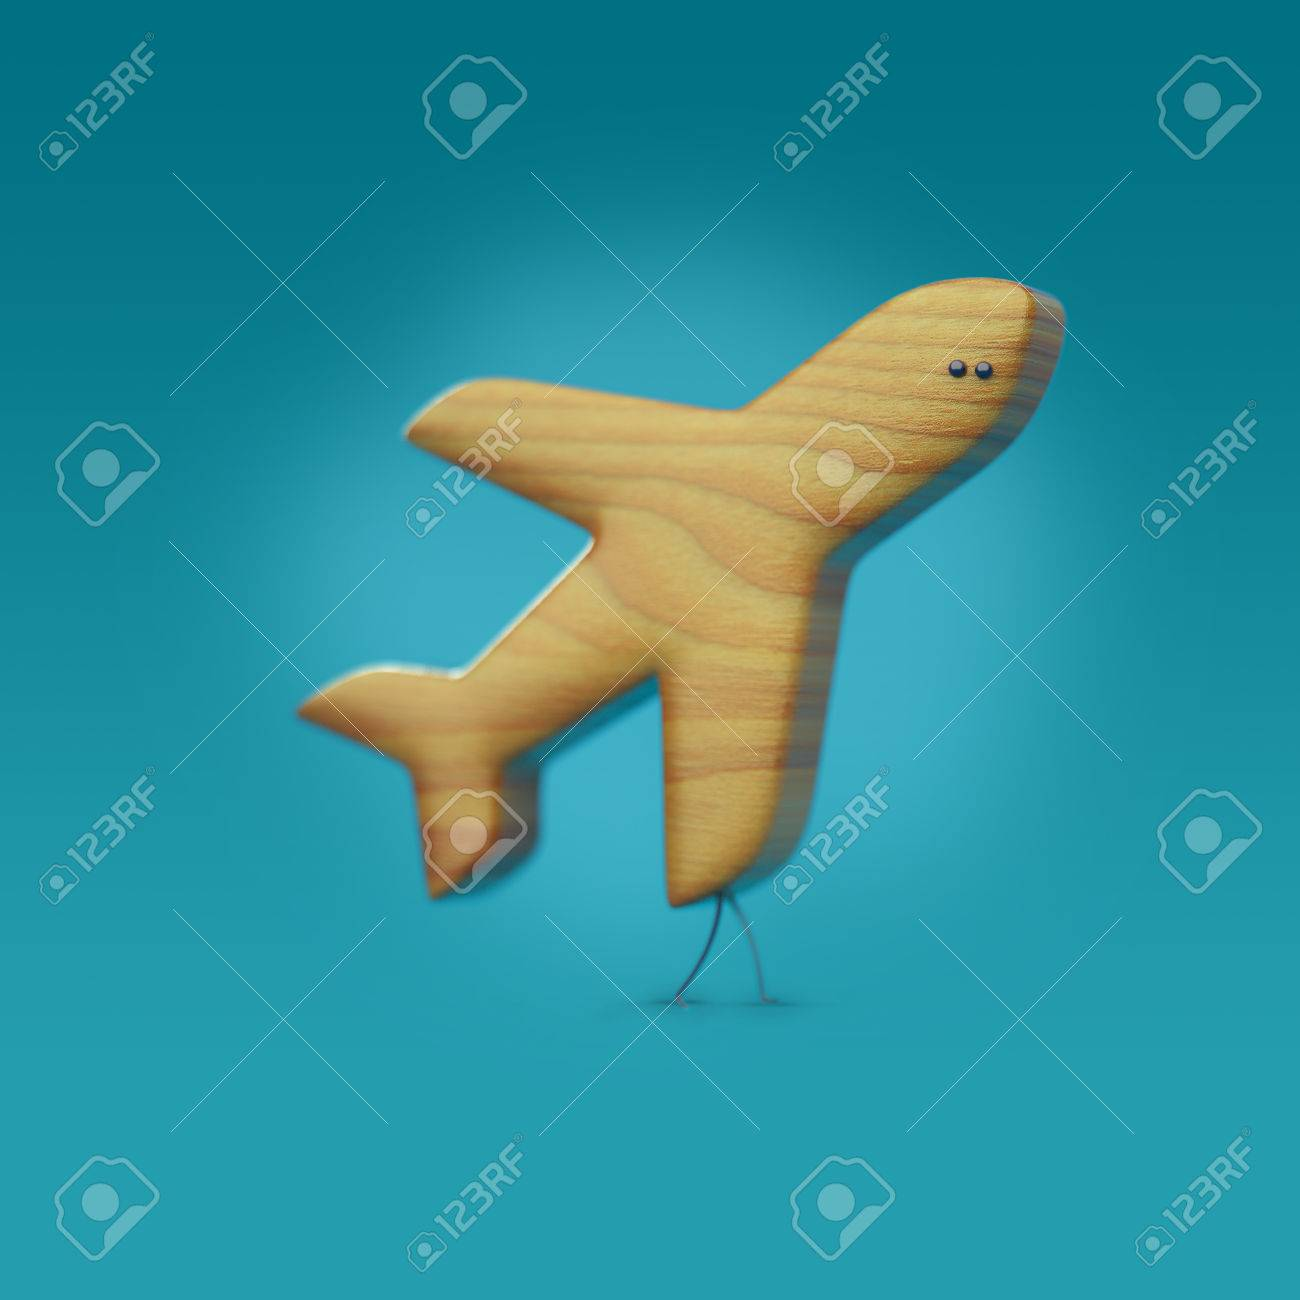 3d icon plane plane character with legs and eyes wooden texture 3d icon plane plane character with legs and eyes wooden texture aviamode stock biocorpaavc Gallery